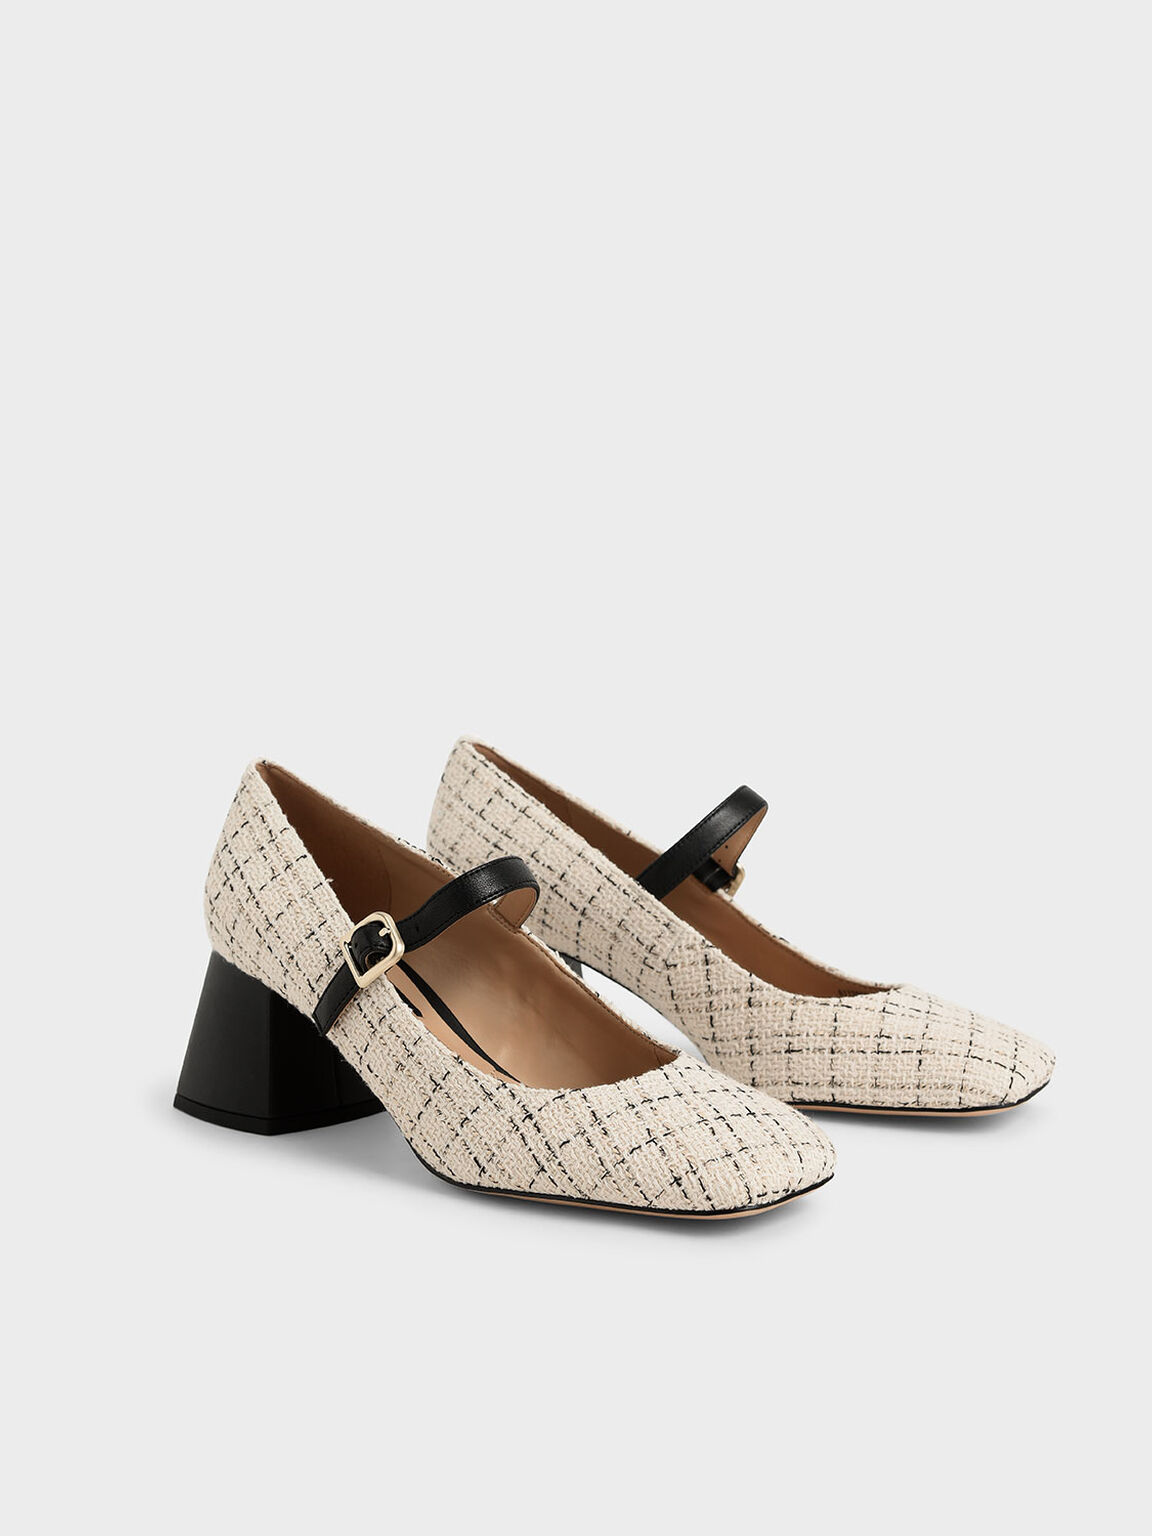 Tweed & Leather Mary Janes, Cream, hi-res